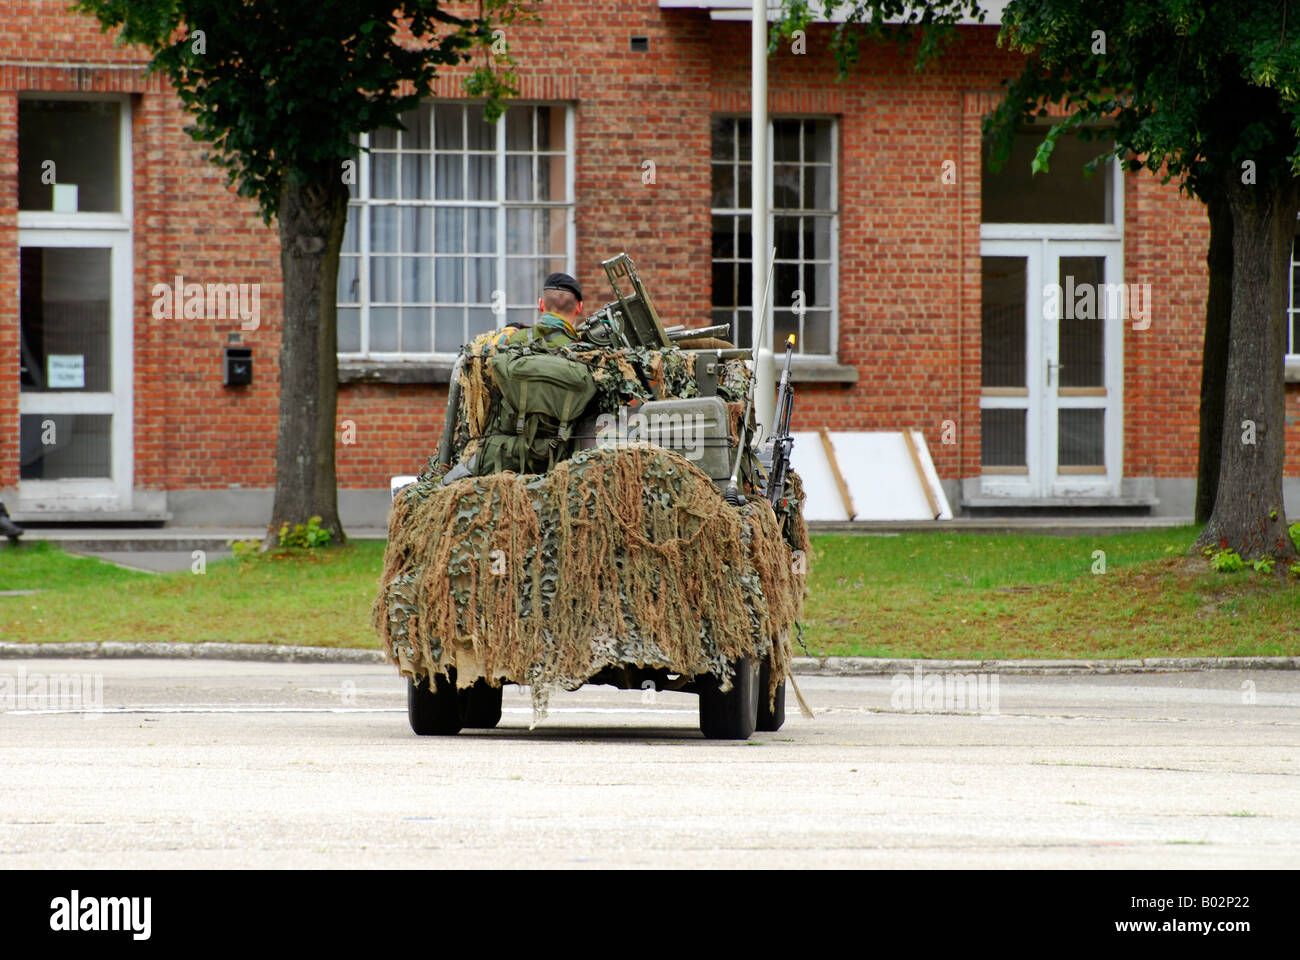 A recce or scout team of the Belgian Army in their VW Iltis jeeps in action. - Stock Image